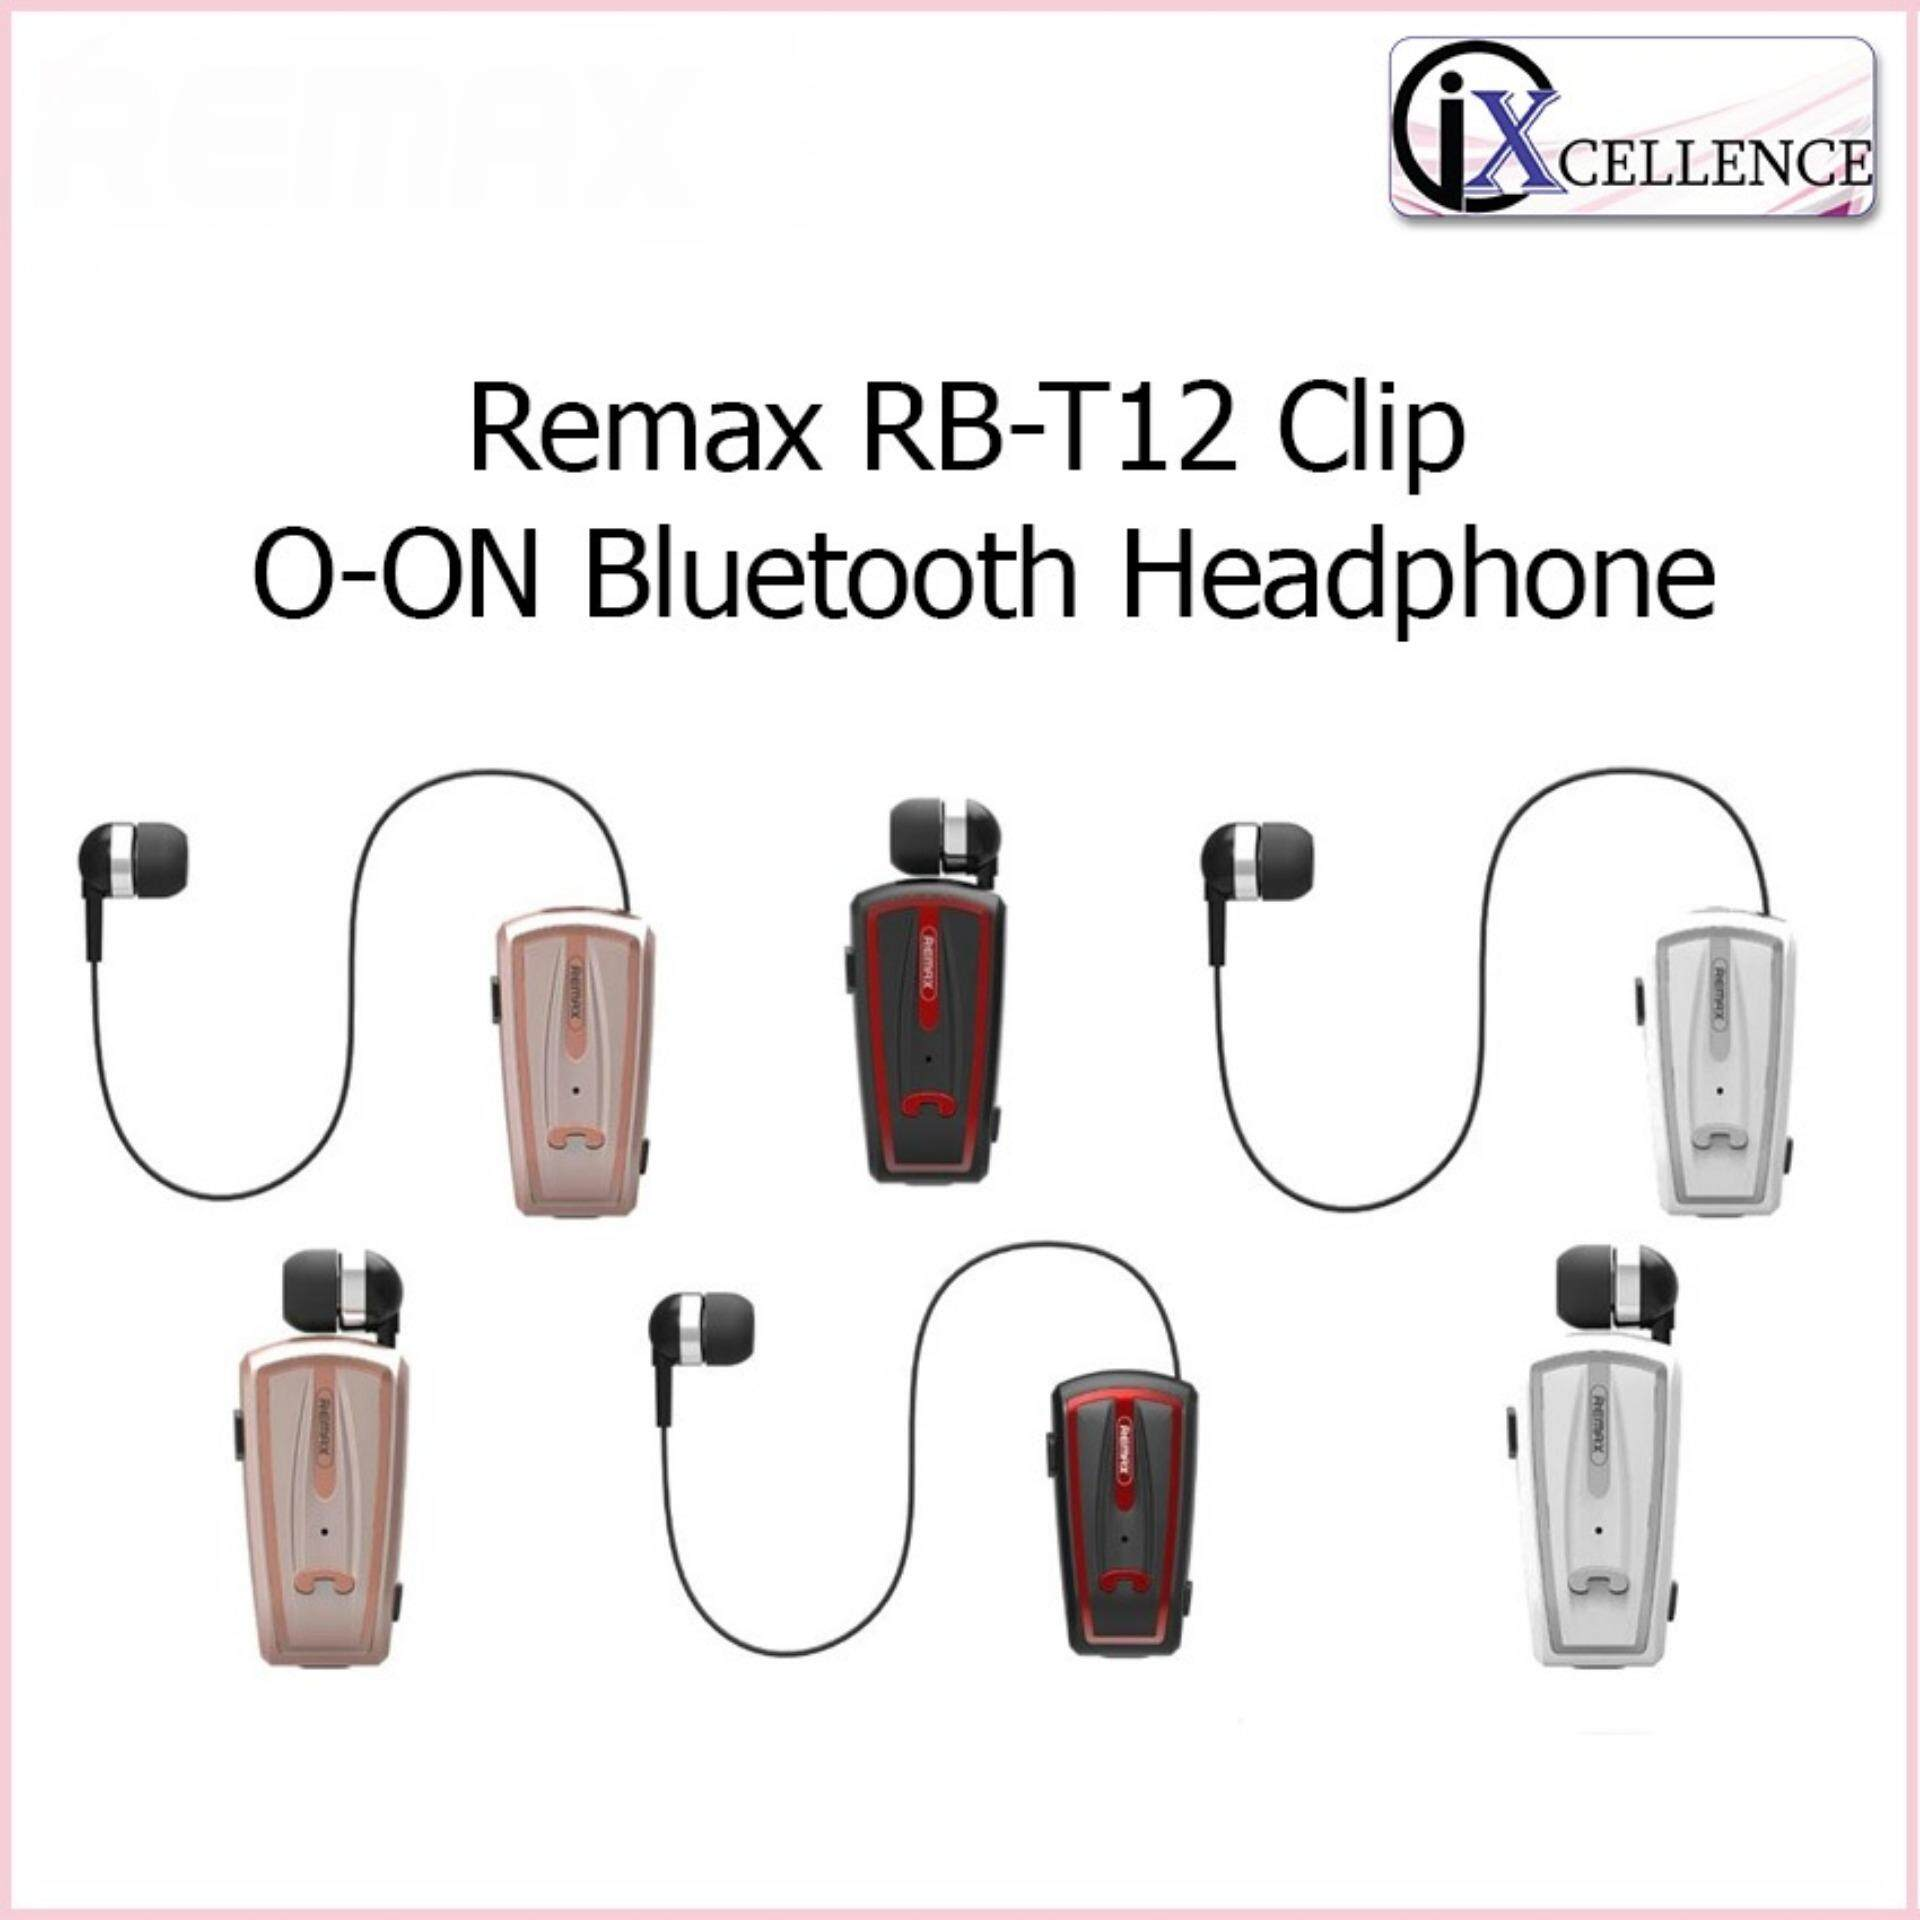 Remax RB-T12 Image